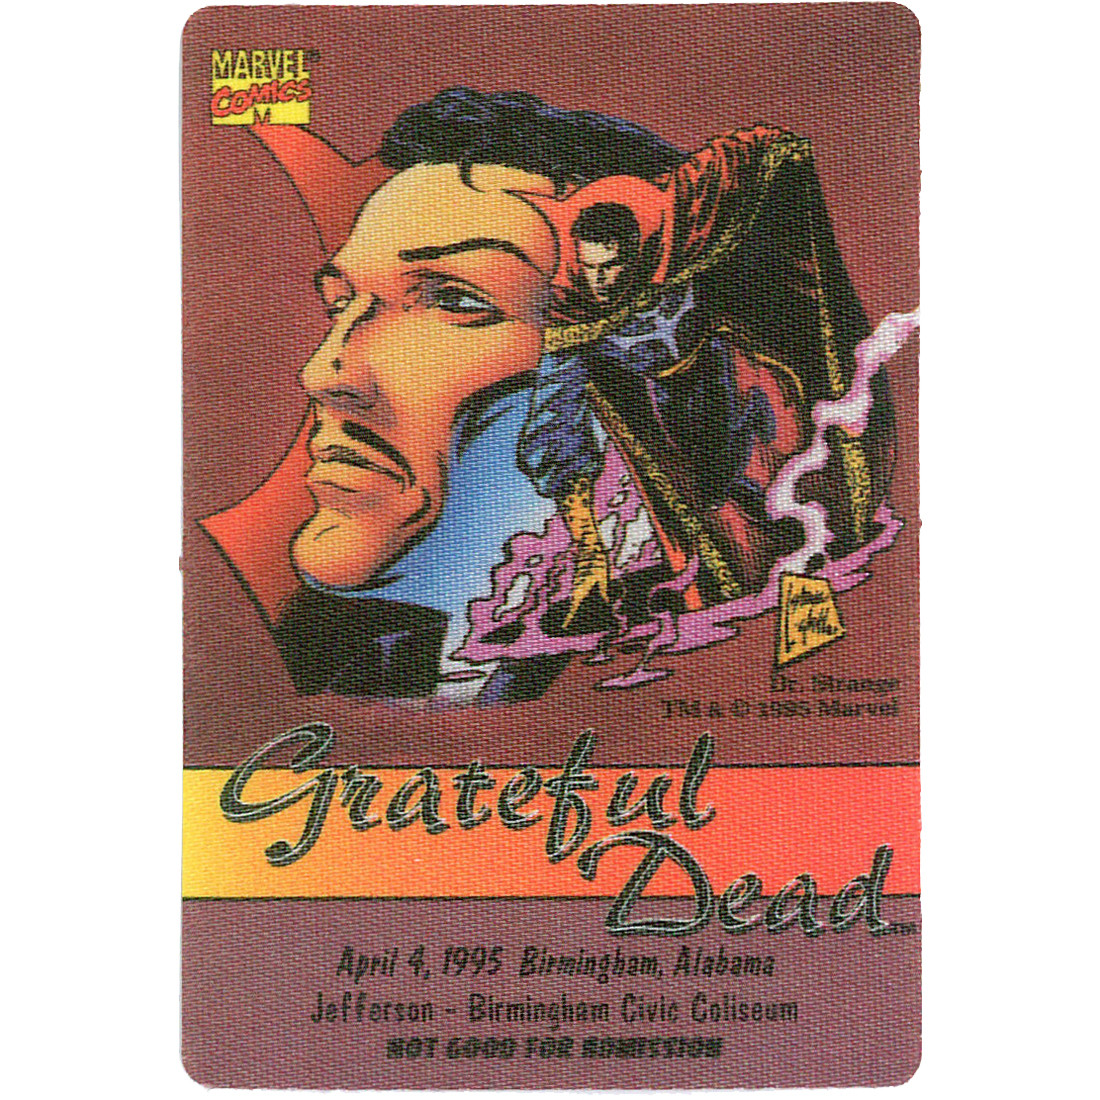 Grateful Dead 1995 04-04 Backstage Pass